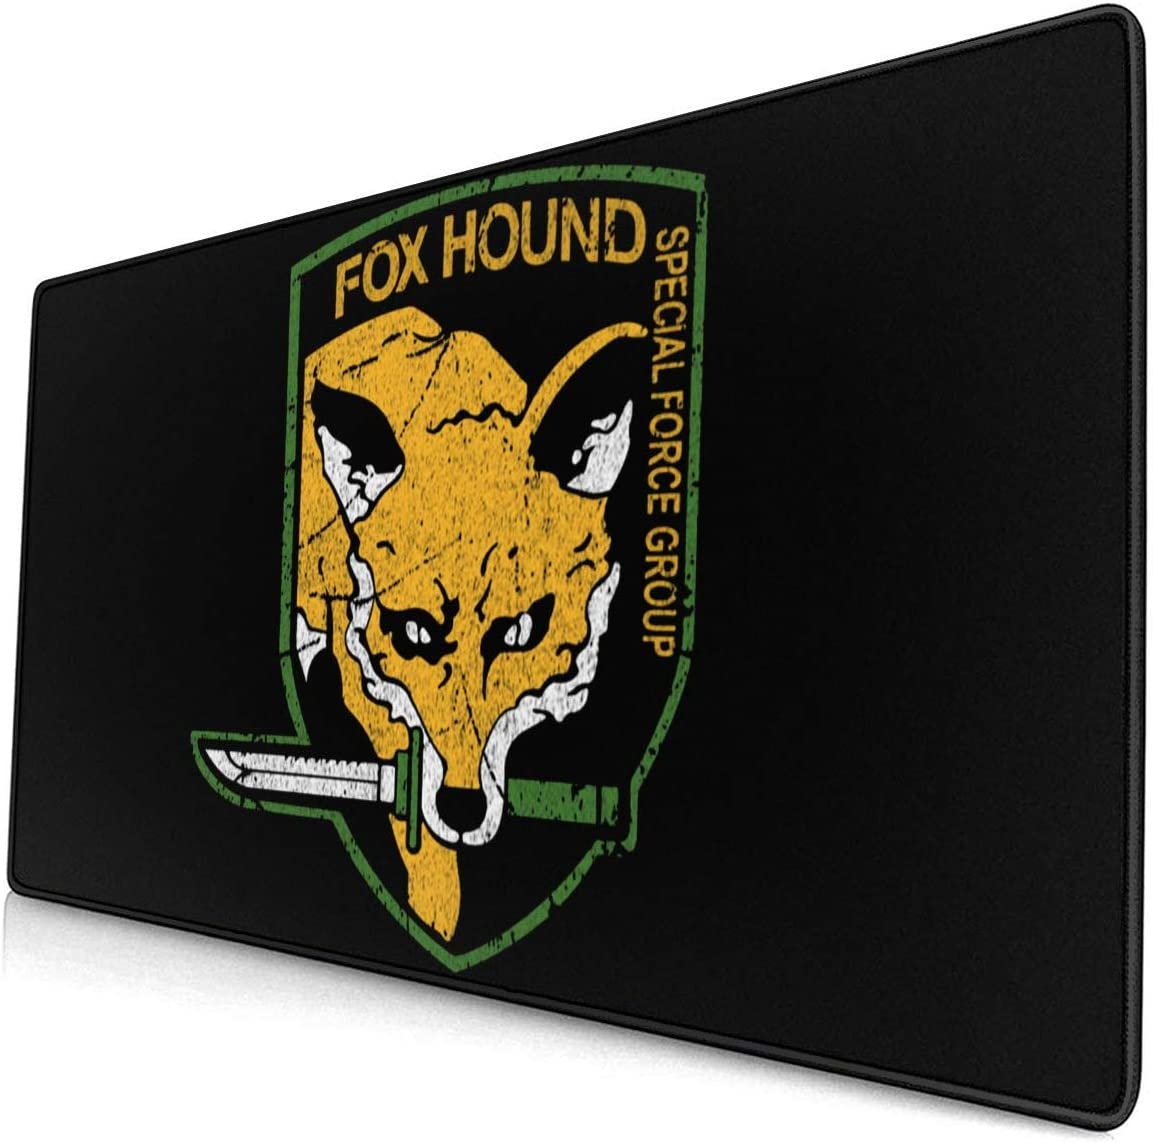 Metal Gear Solid Fox Hound Grace-Ra Large Gaming Mouse Pad 15.8 X 29.5 Inch